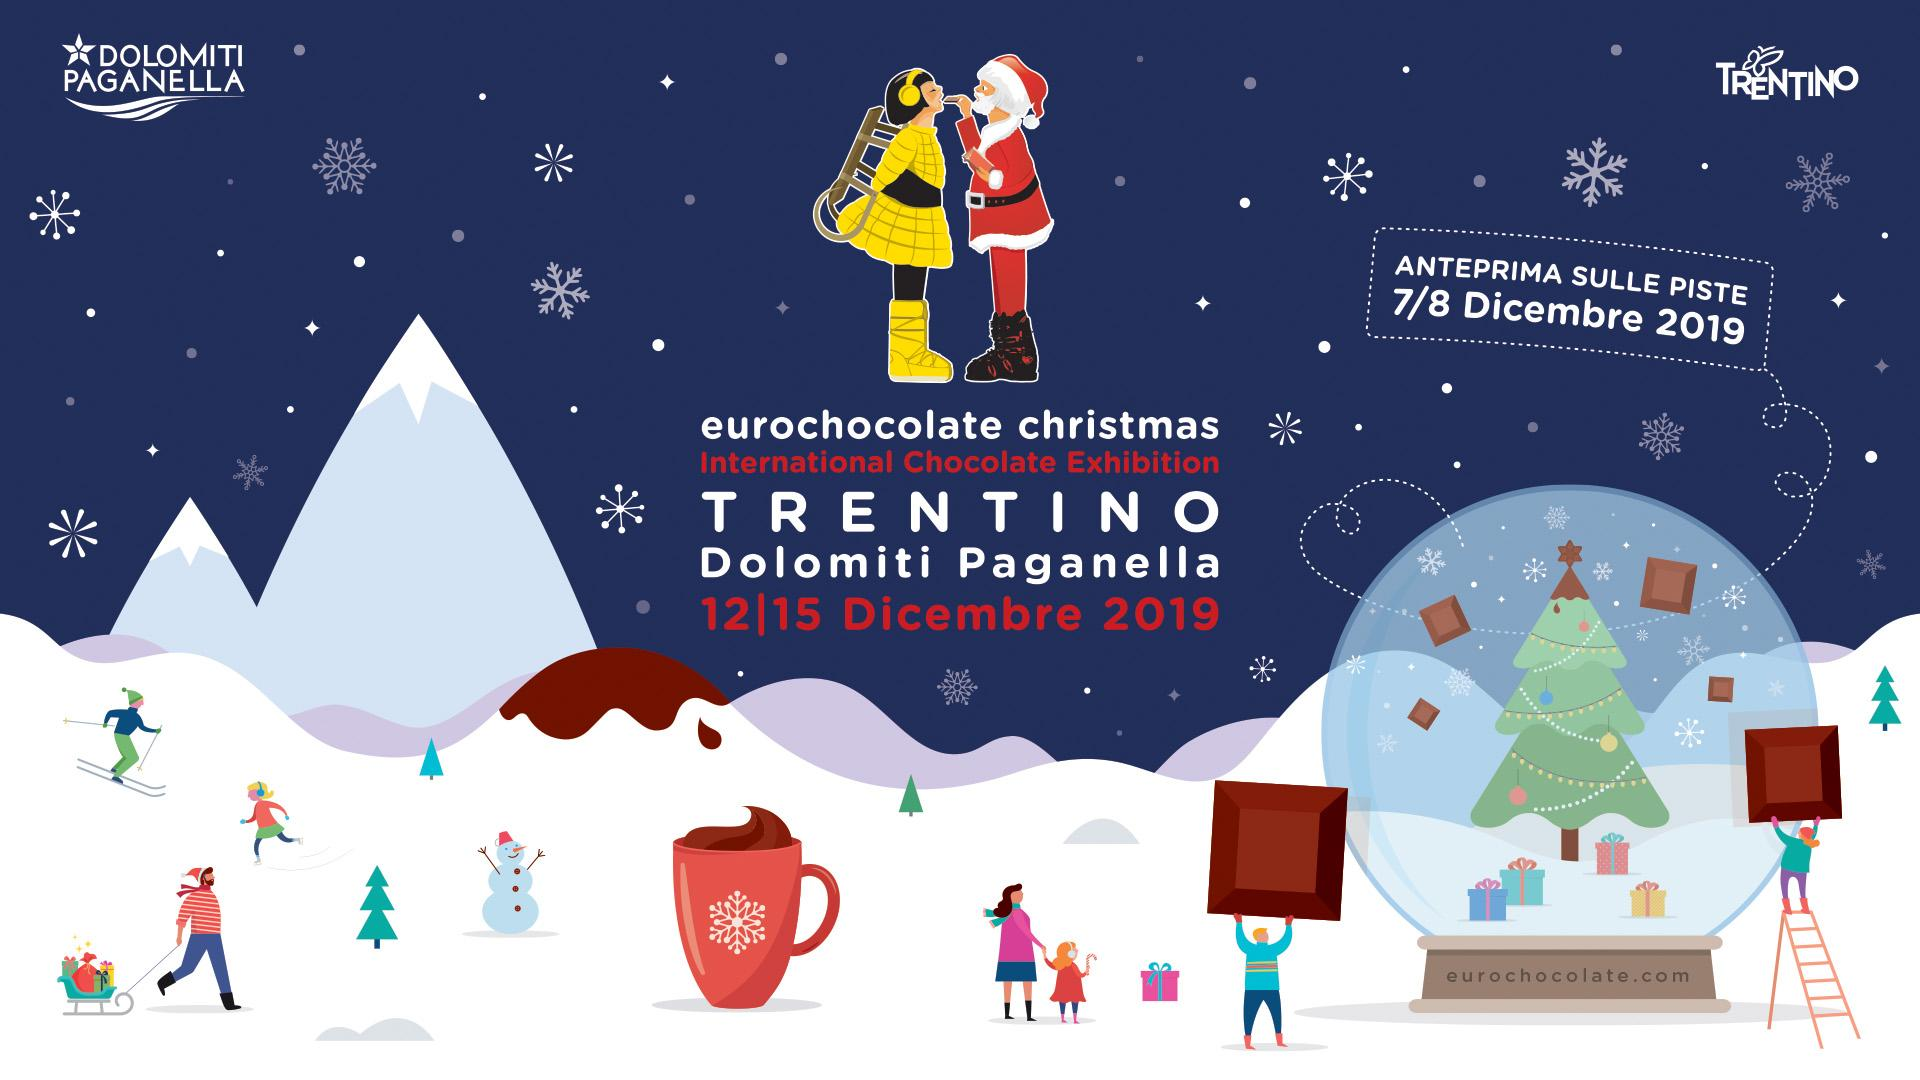 EUROCHOCOLATE CHRISTMAS 2019